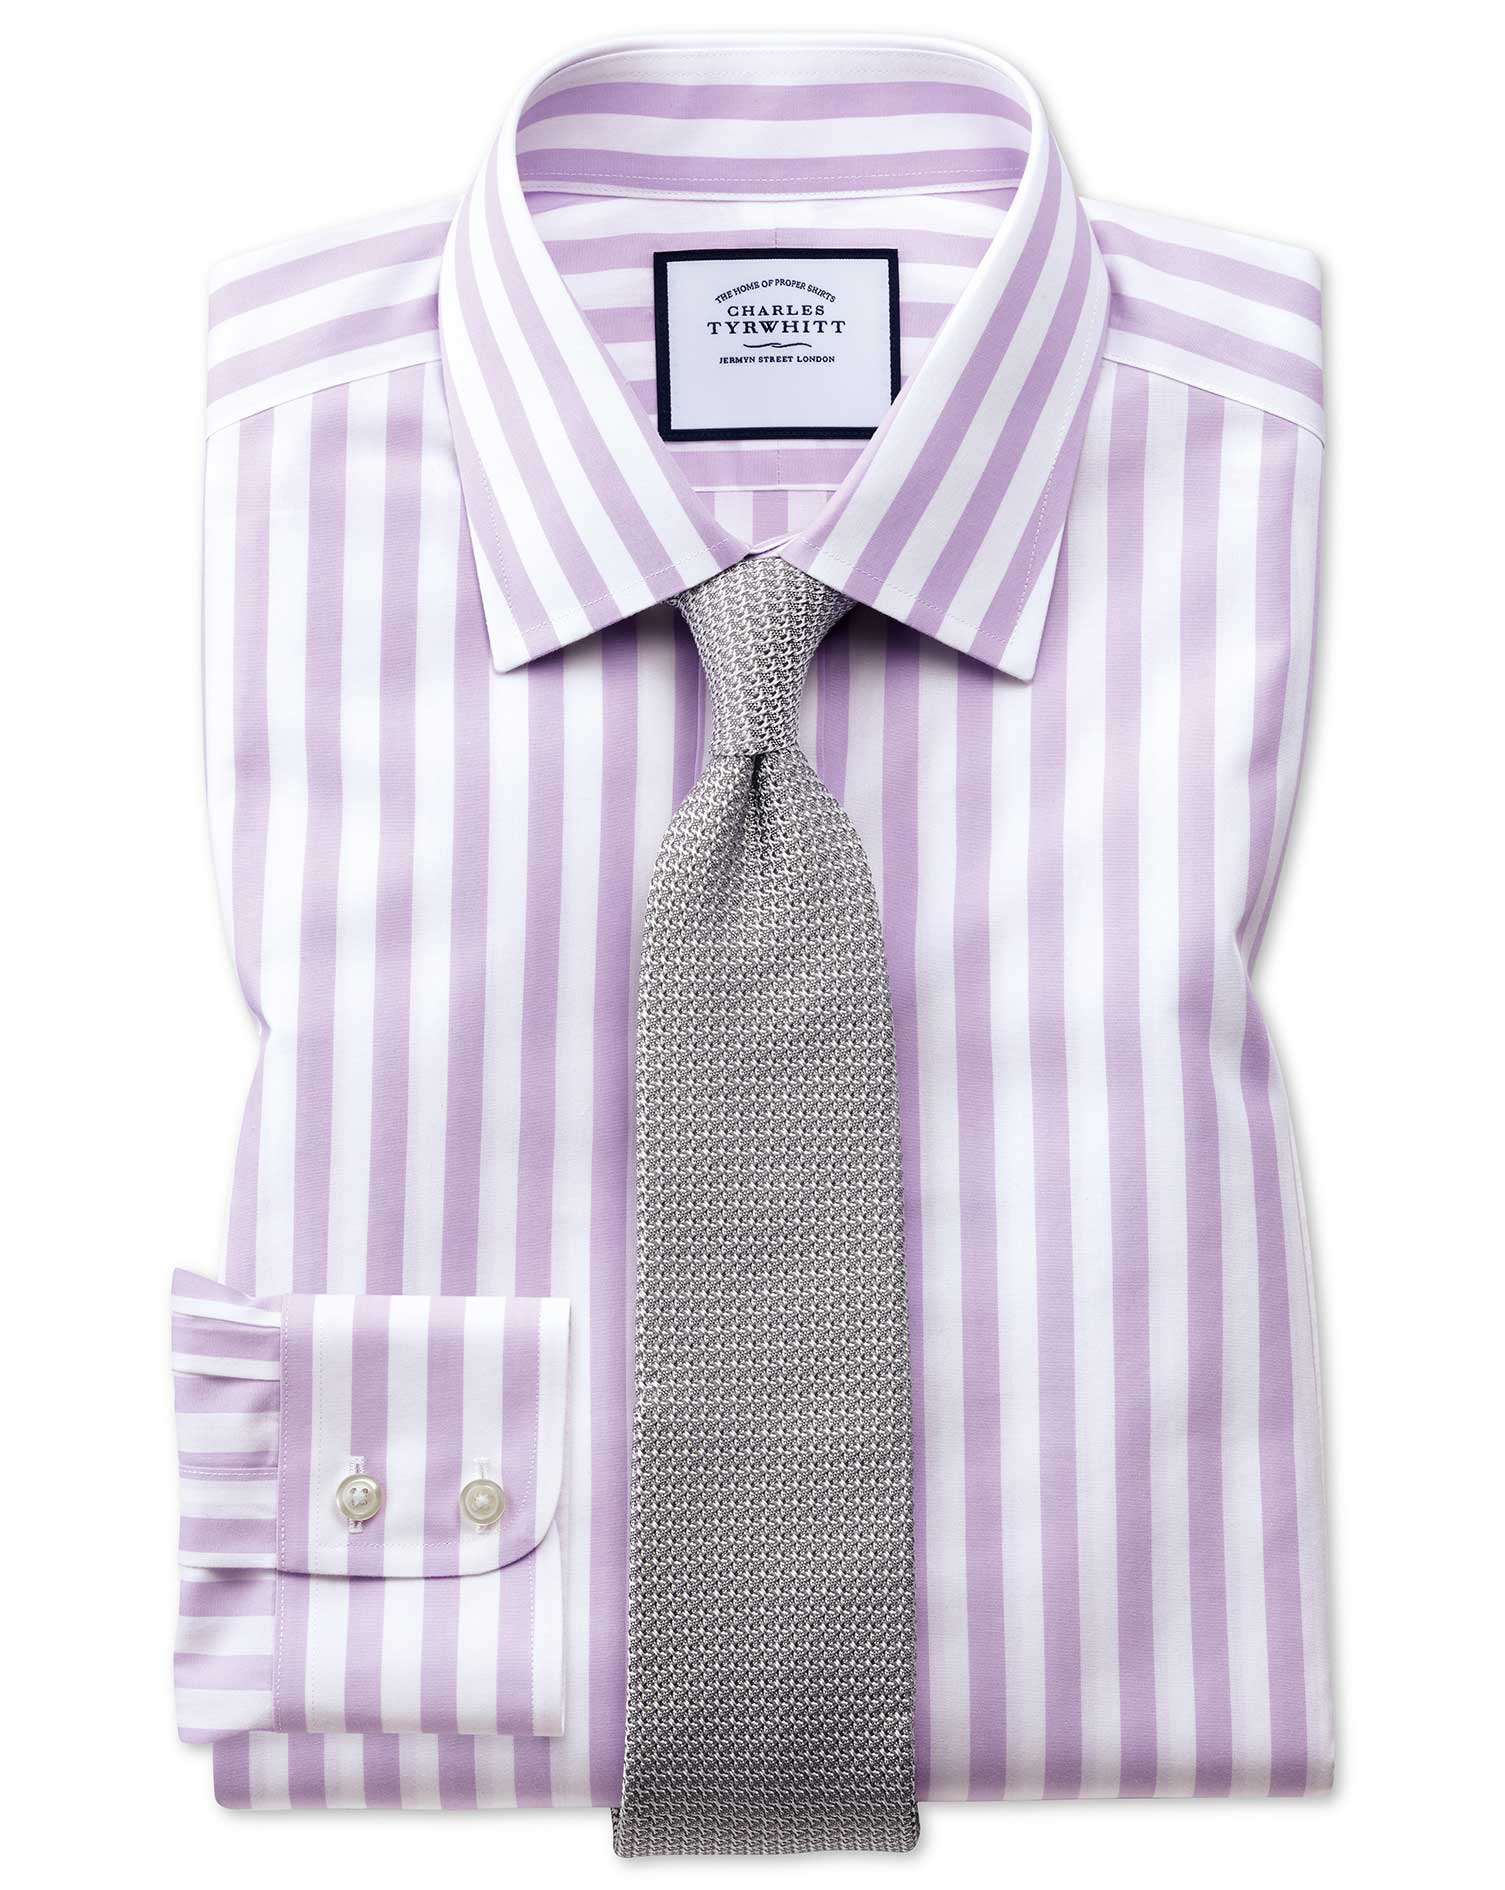 Slim Fit Non-Iron Jermyn Street Stripes Purple Cotton Formal Shirt Single Cuff Size 15.5/32 by Charl